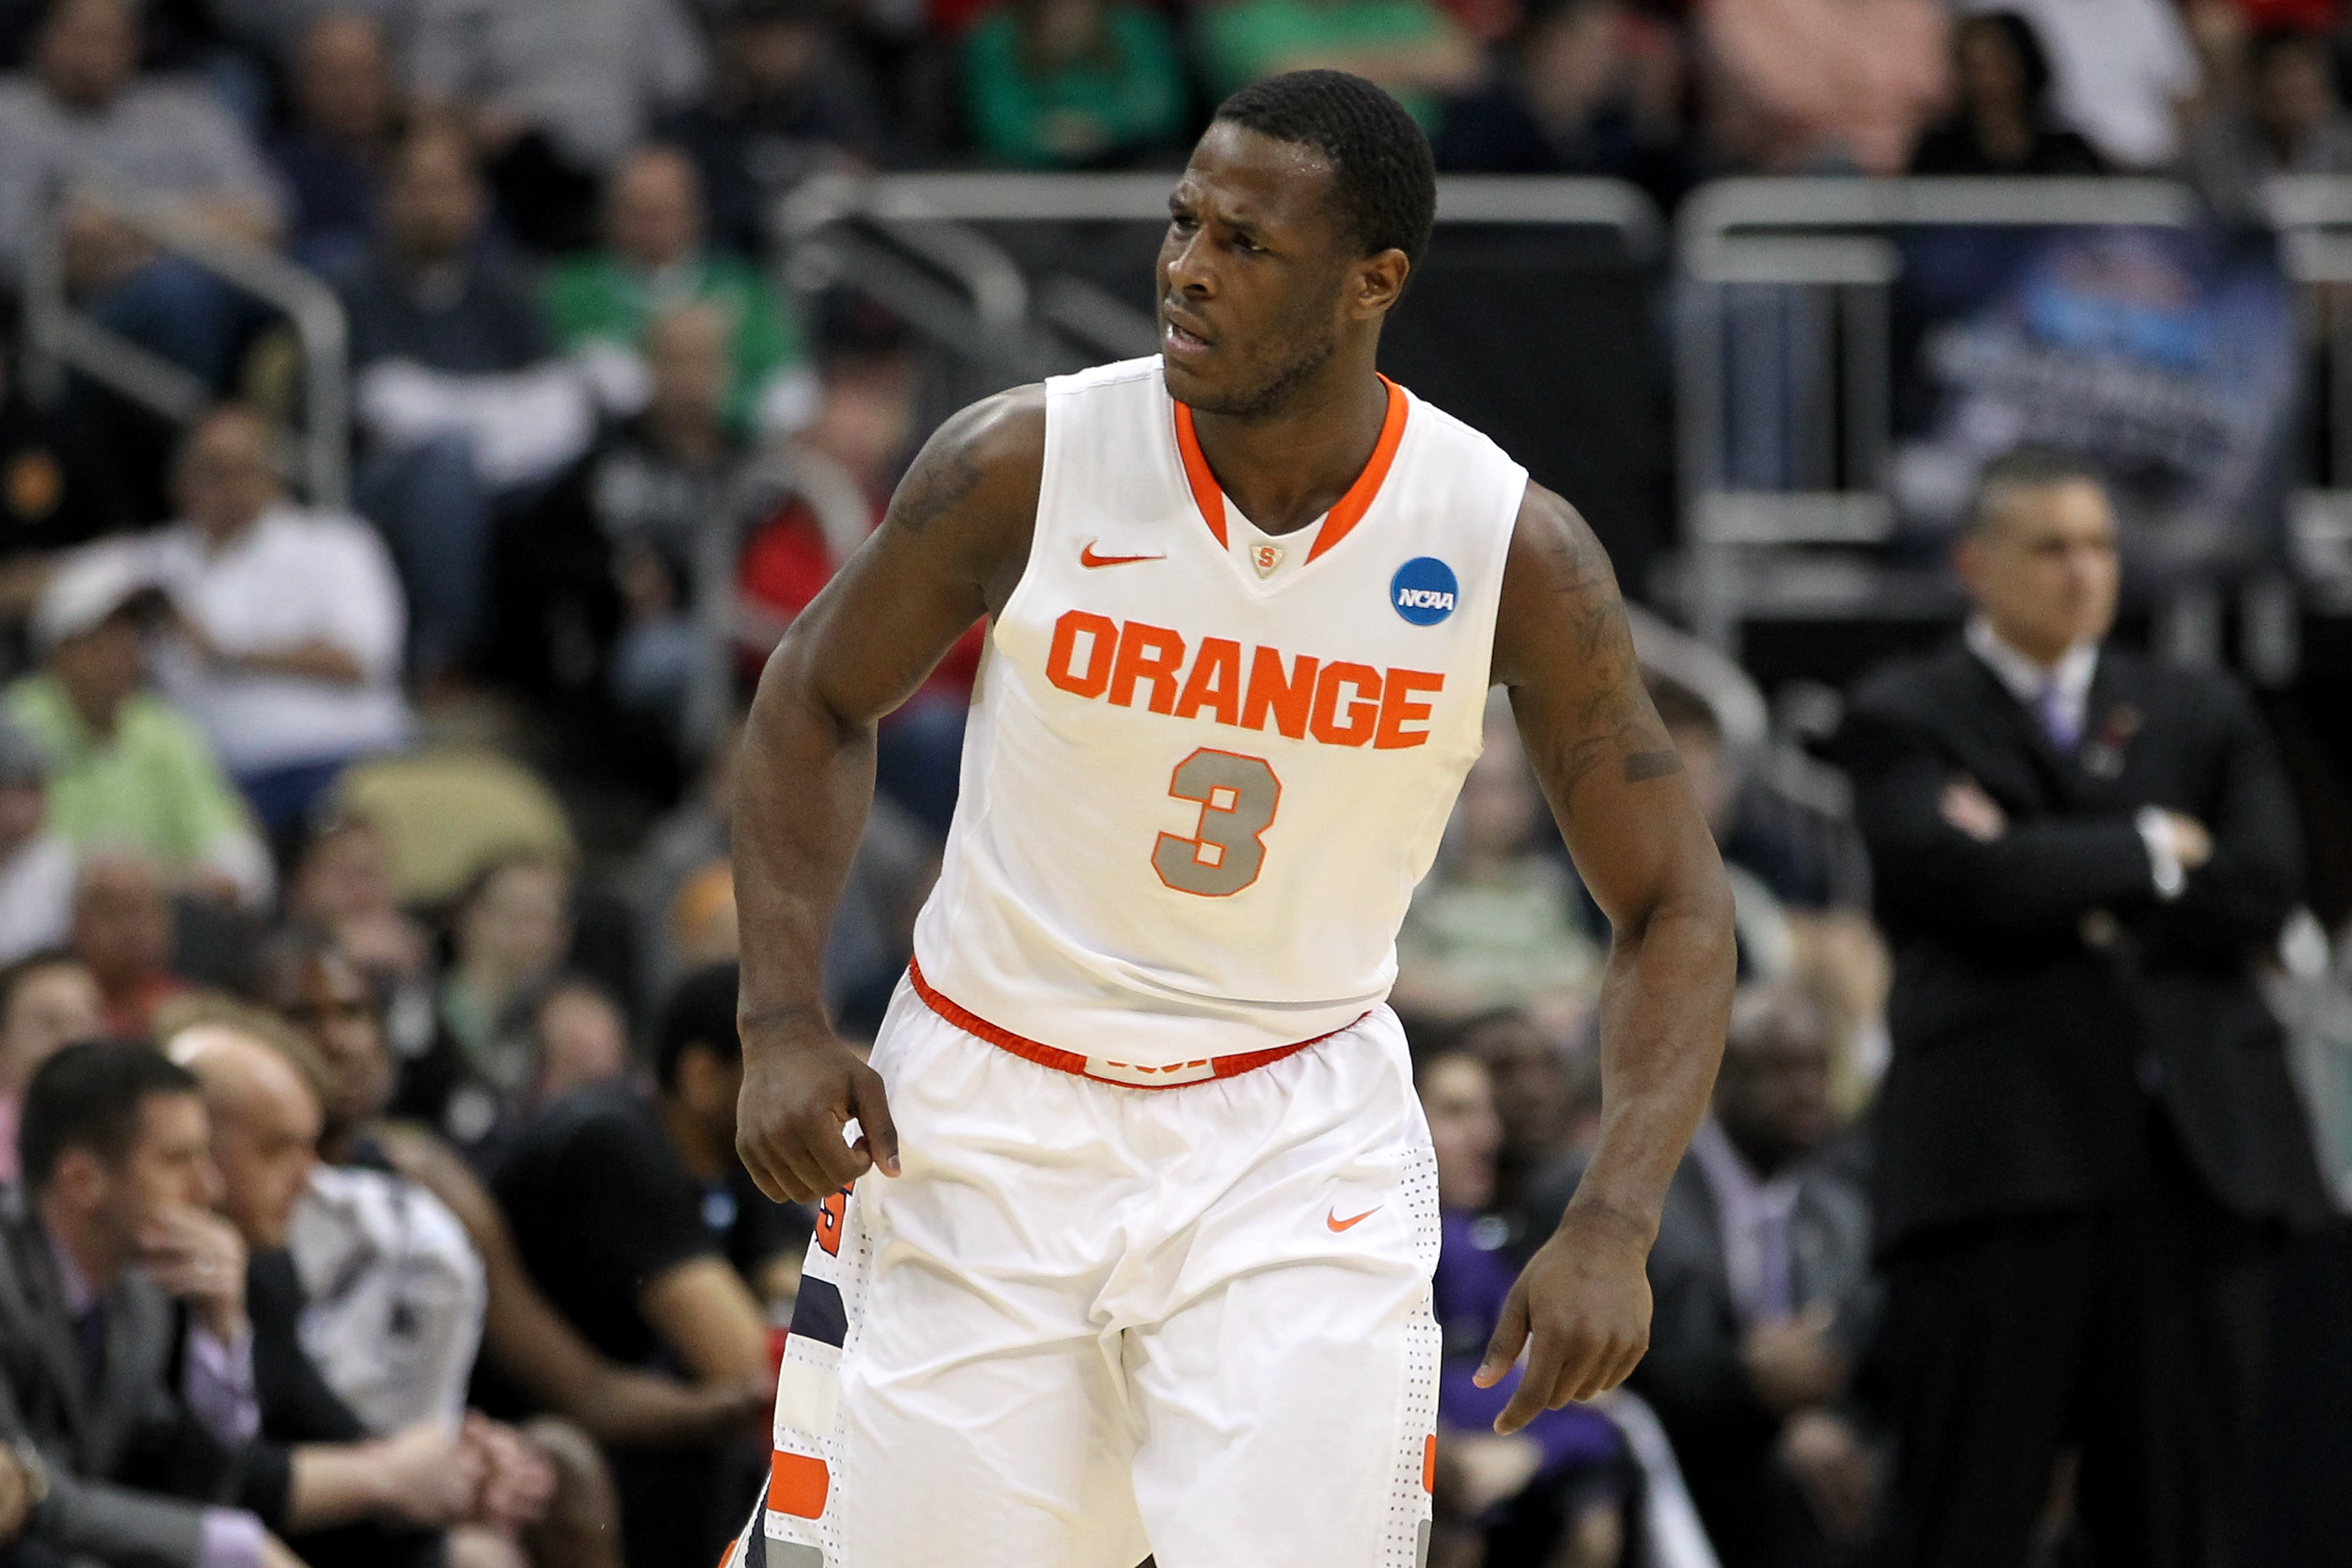 Syracuse's Dion Waiters has quickly climbed into the top half of the draft lottery. (Getty Images)